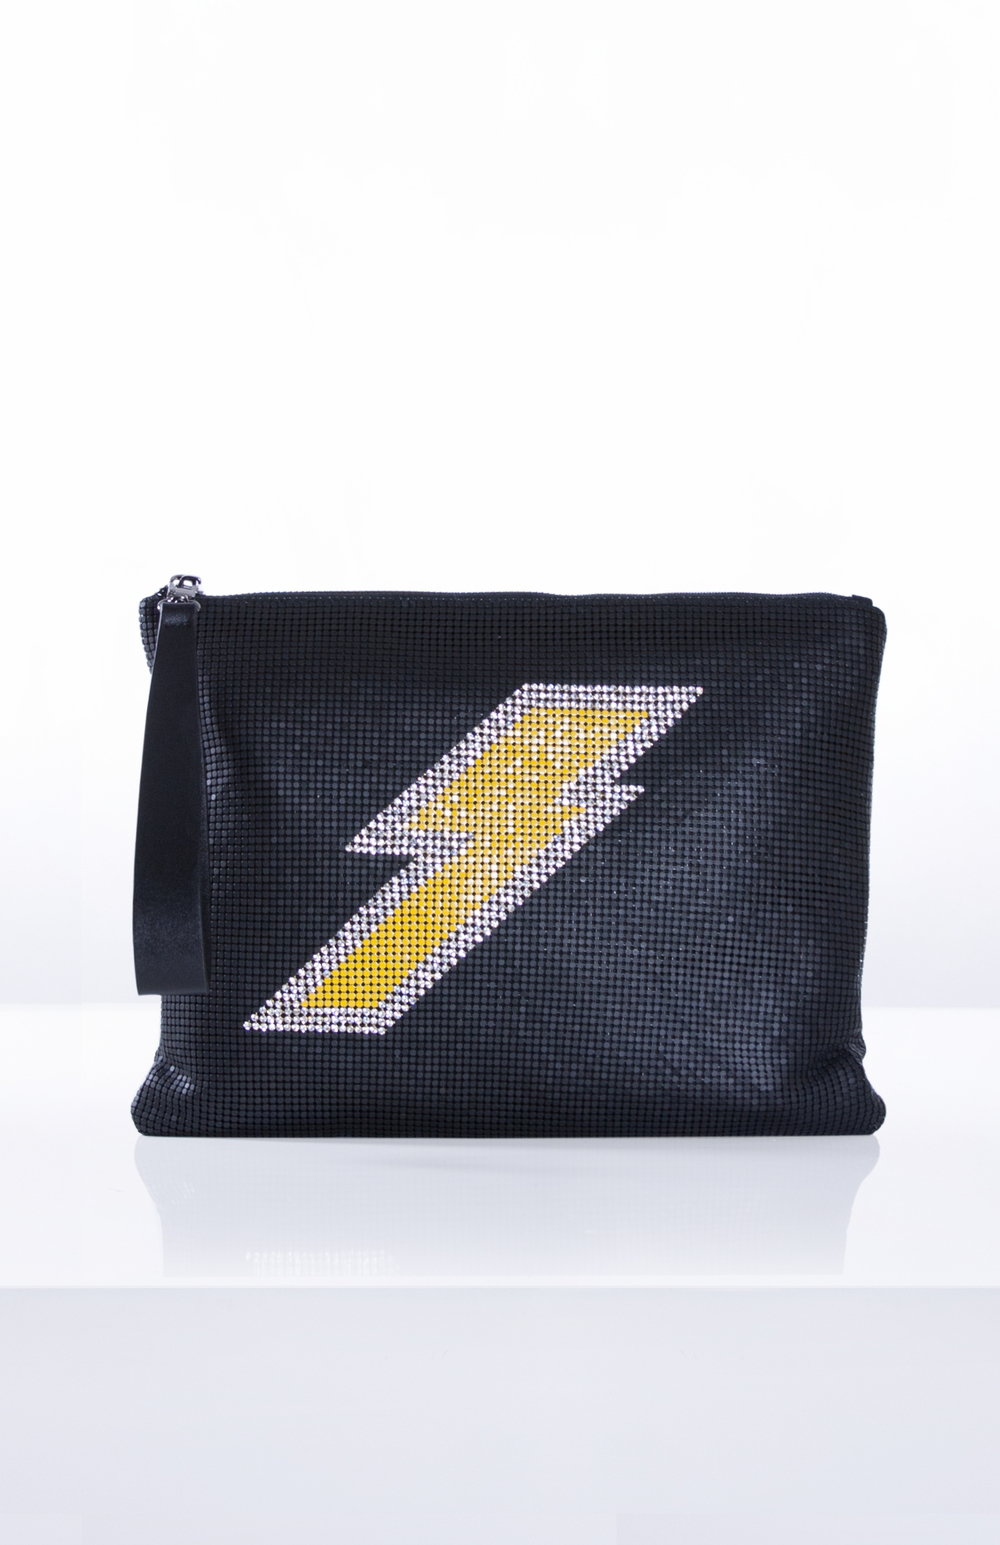 JUPITER MESH CLUTCH- Yellow + Black